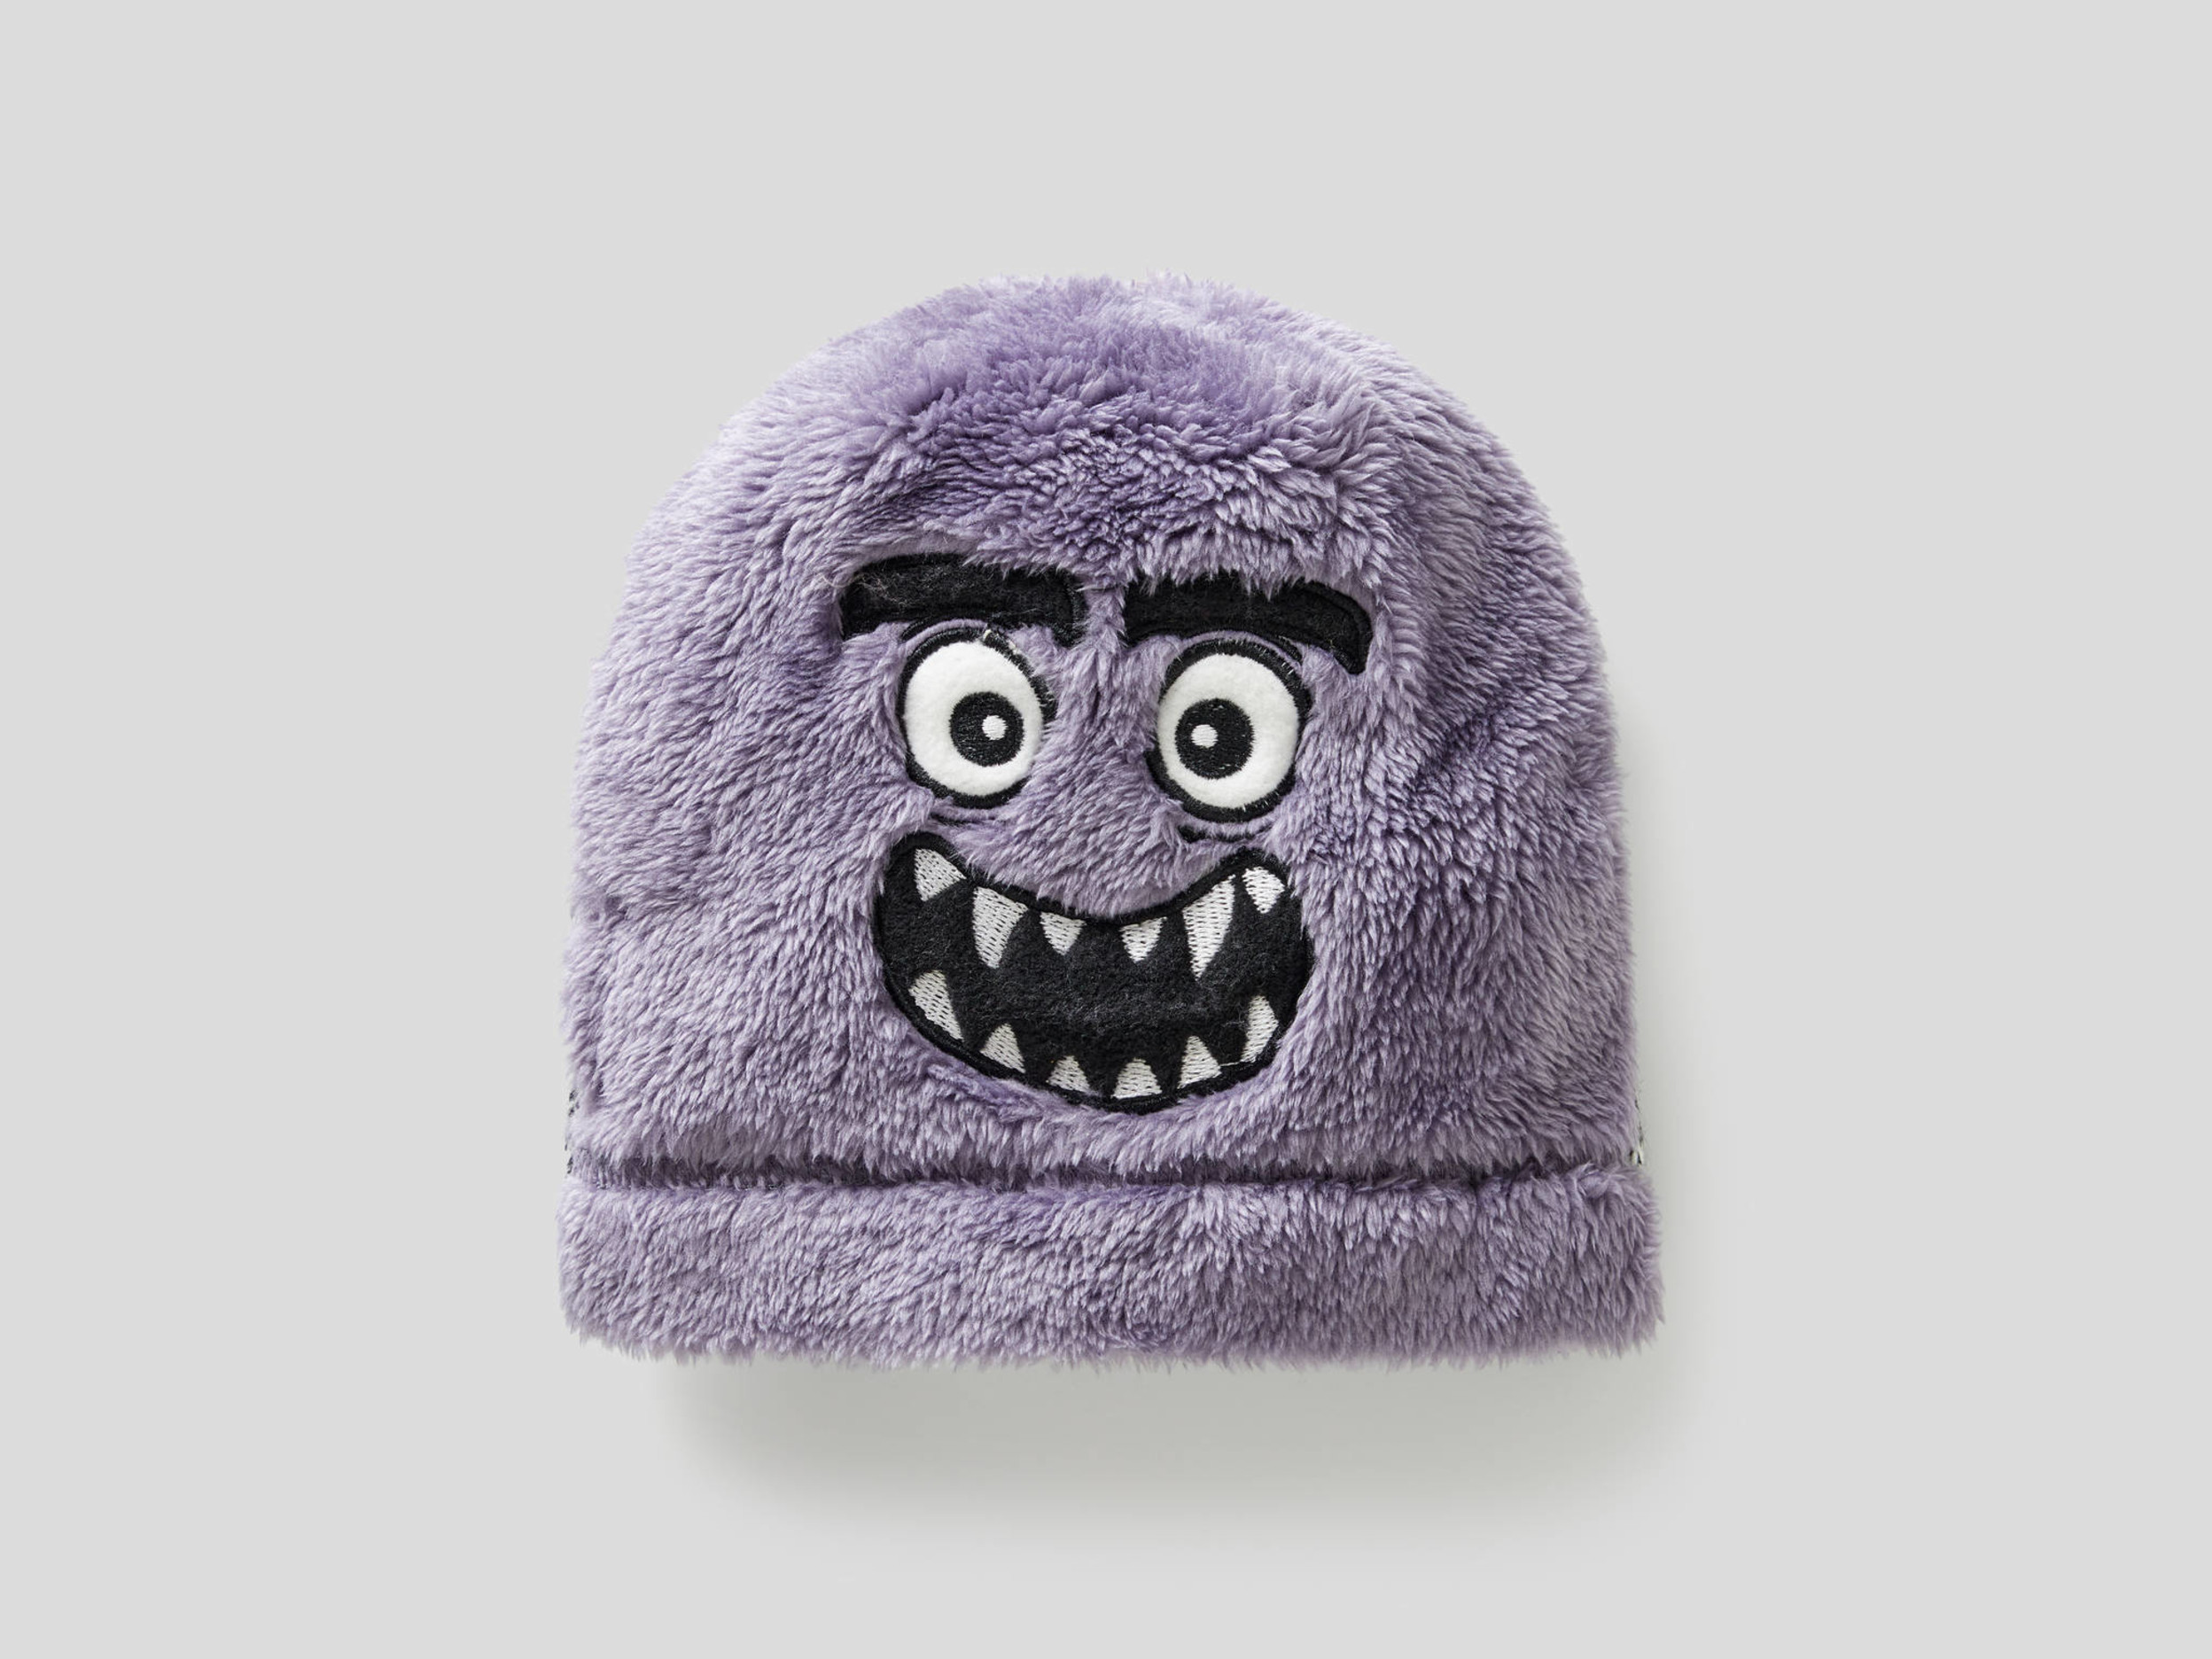 Benetton, Knit Fleece Hat With Embroidery, size , Gray, Kids